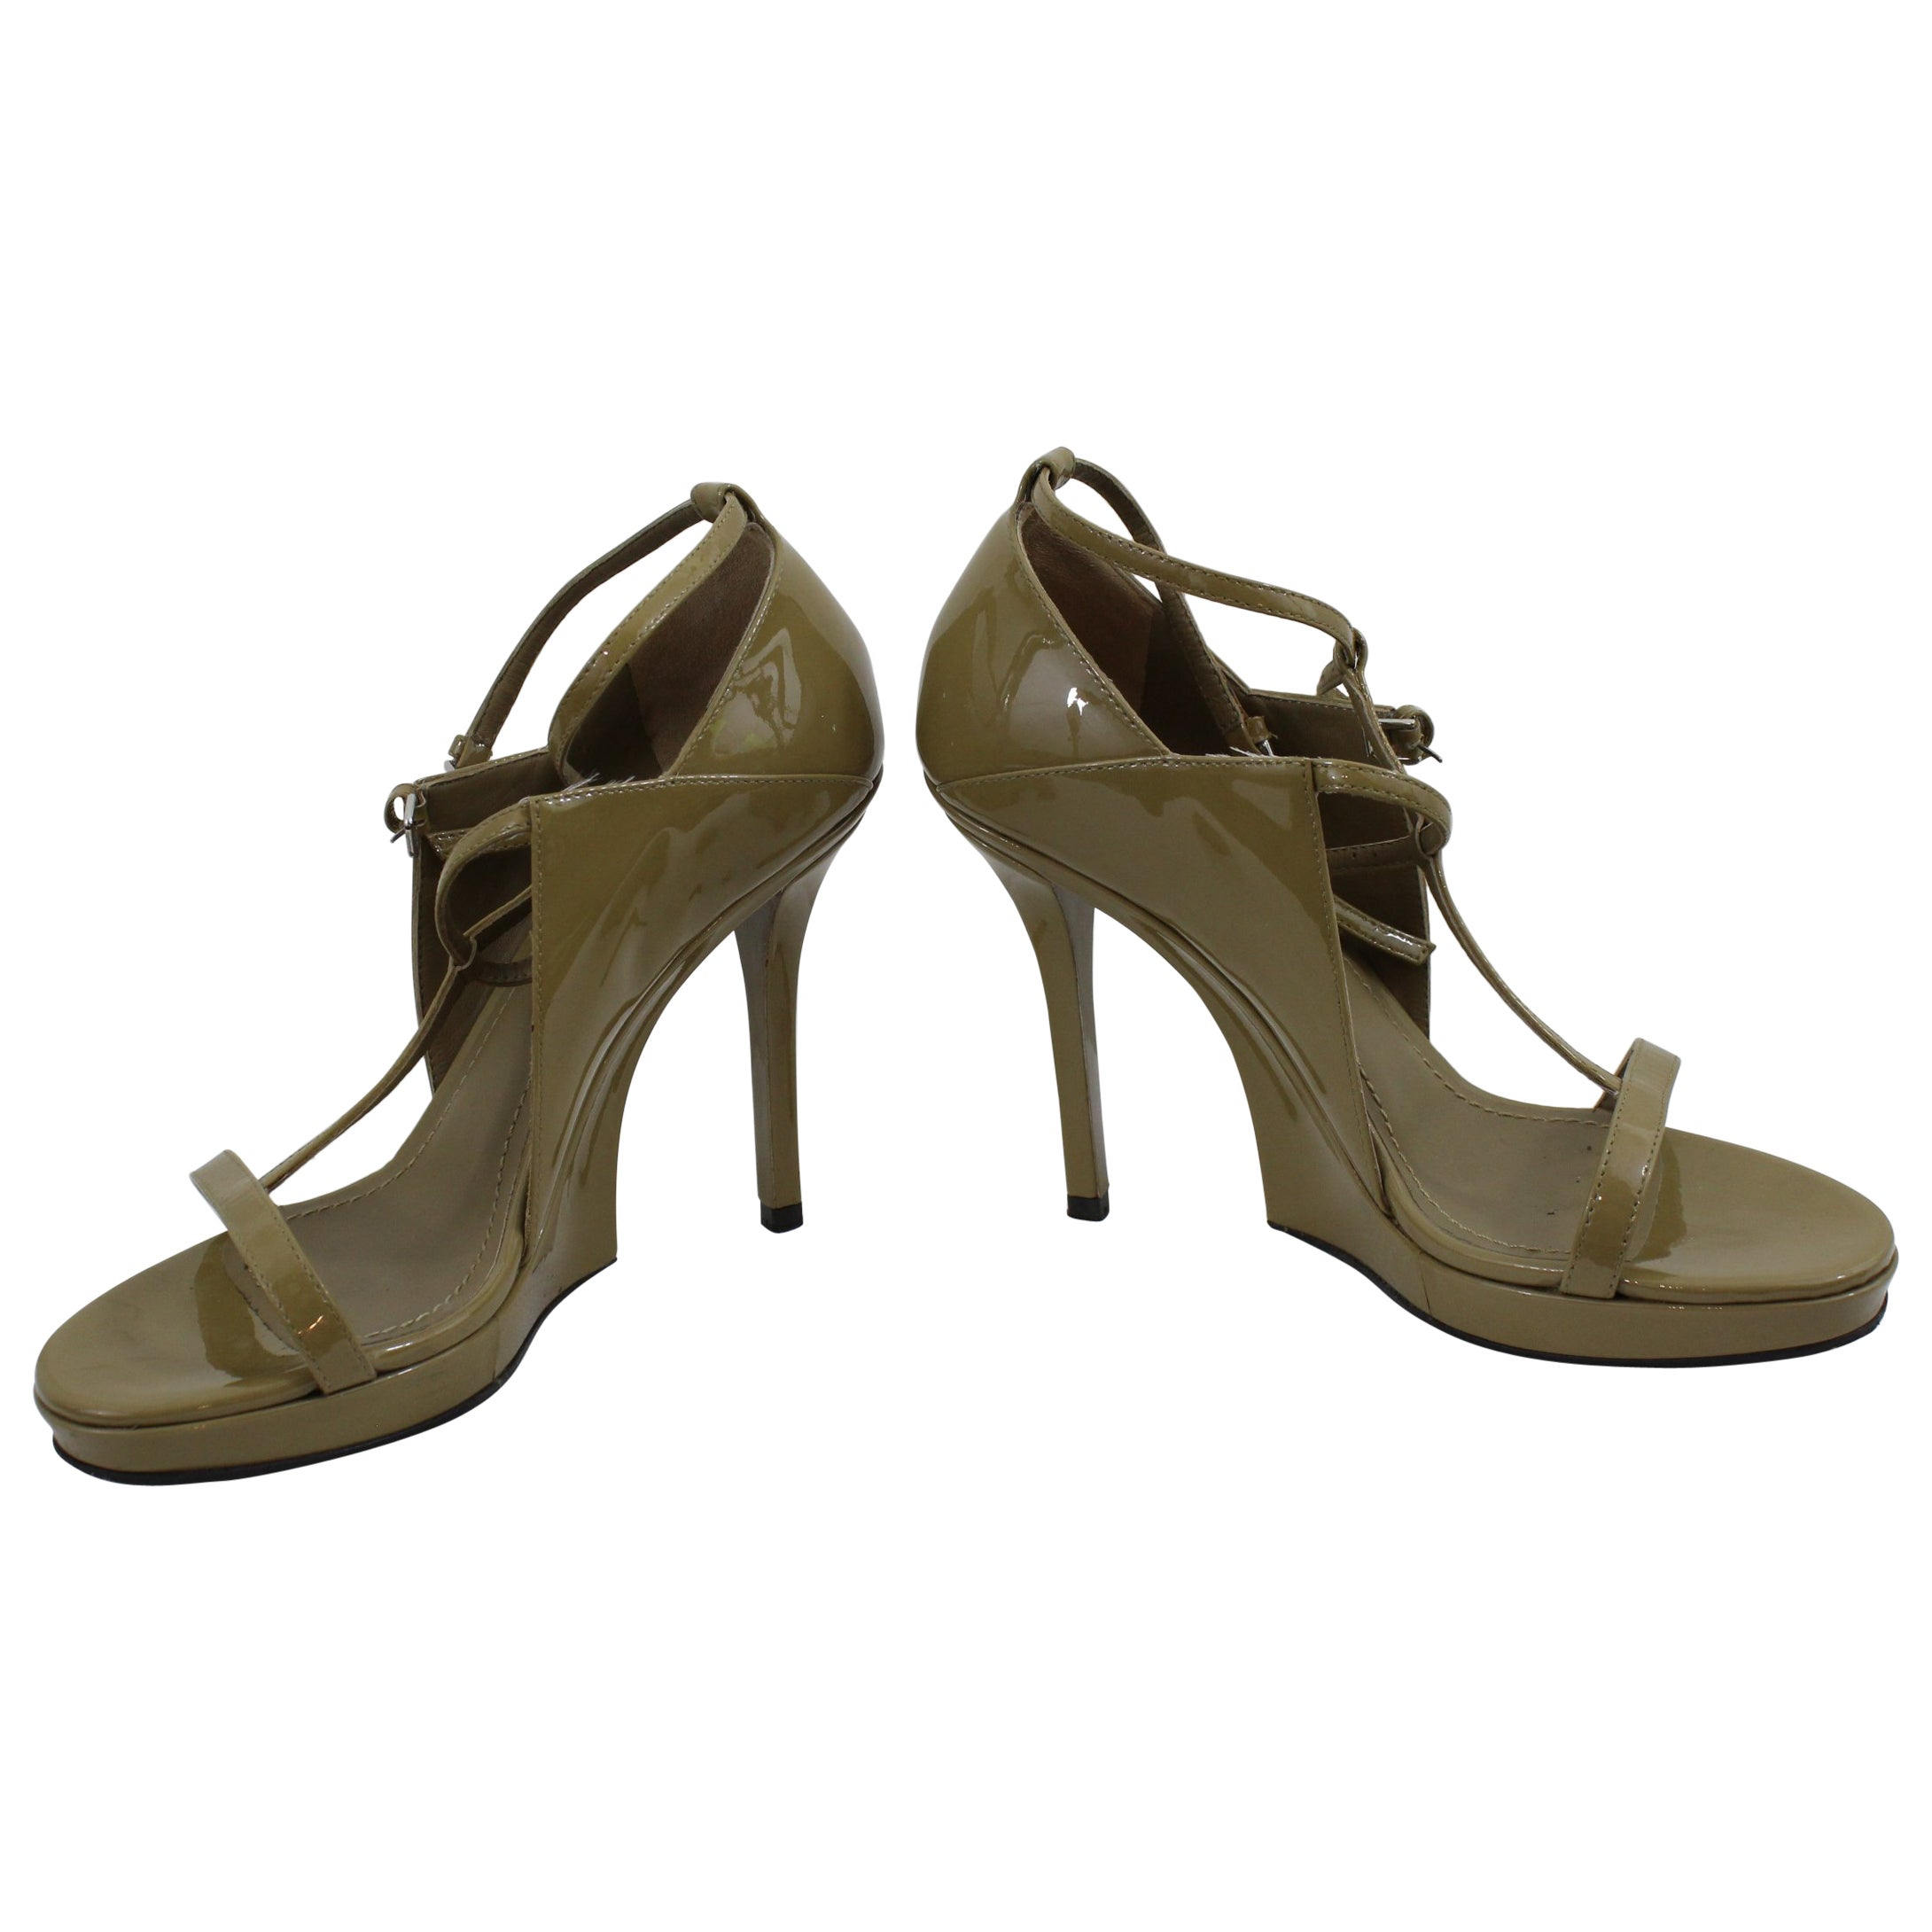 8a28db16c3 Really nice pair of Yves Saint Laurent sandals in Patented Leather. Size  5.5 US For Sale at 1stdibs